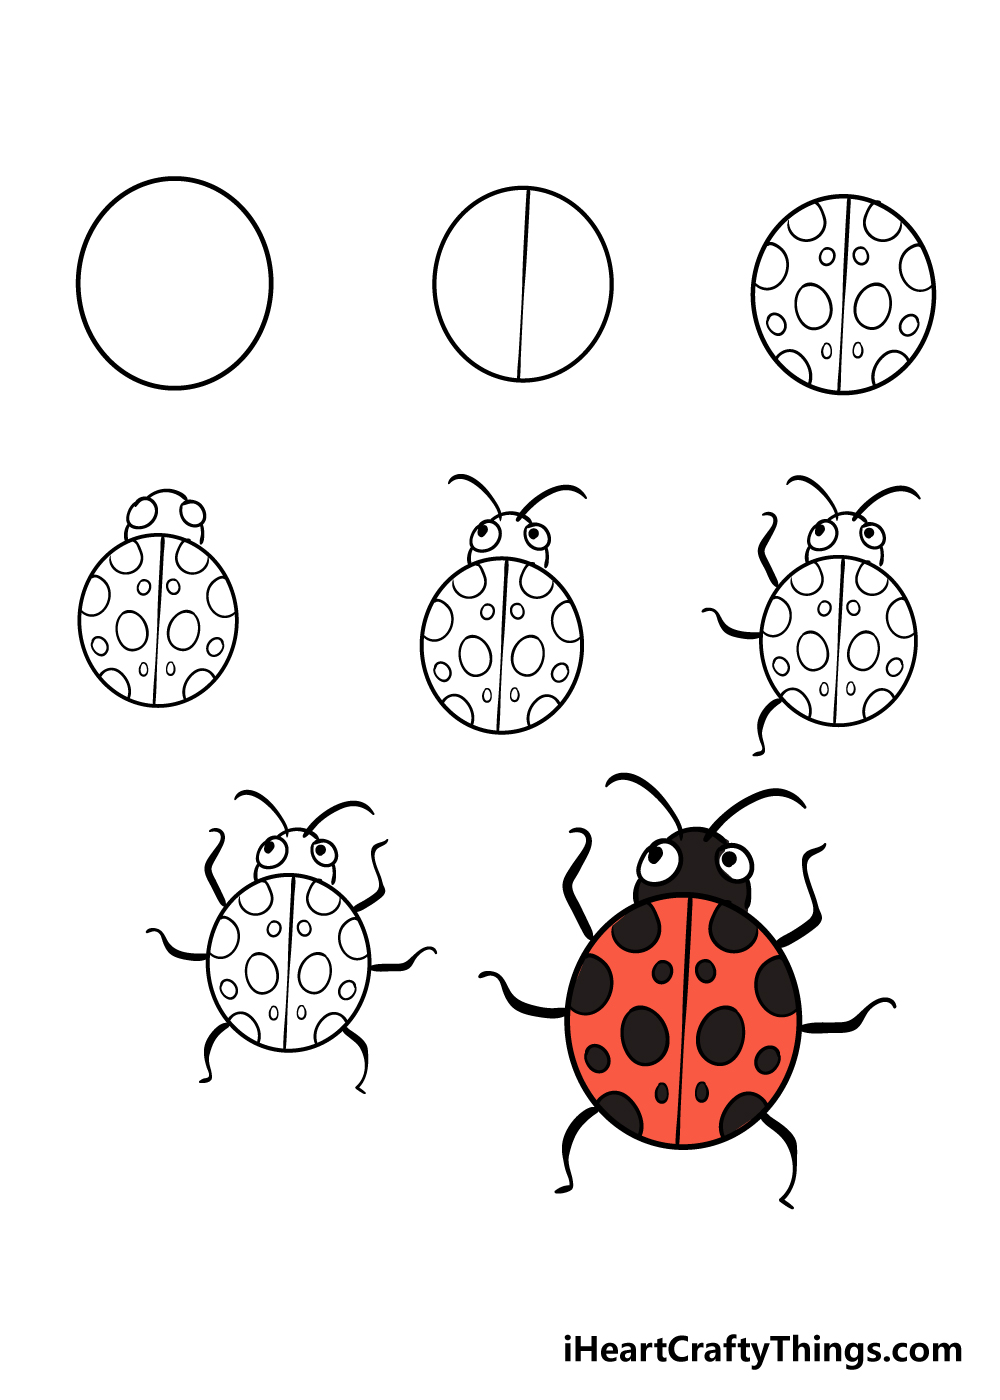 how to draw ladybug in 8 steps